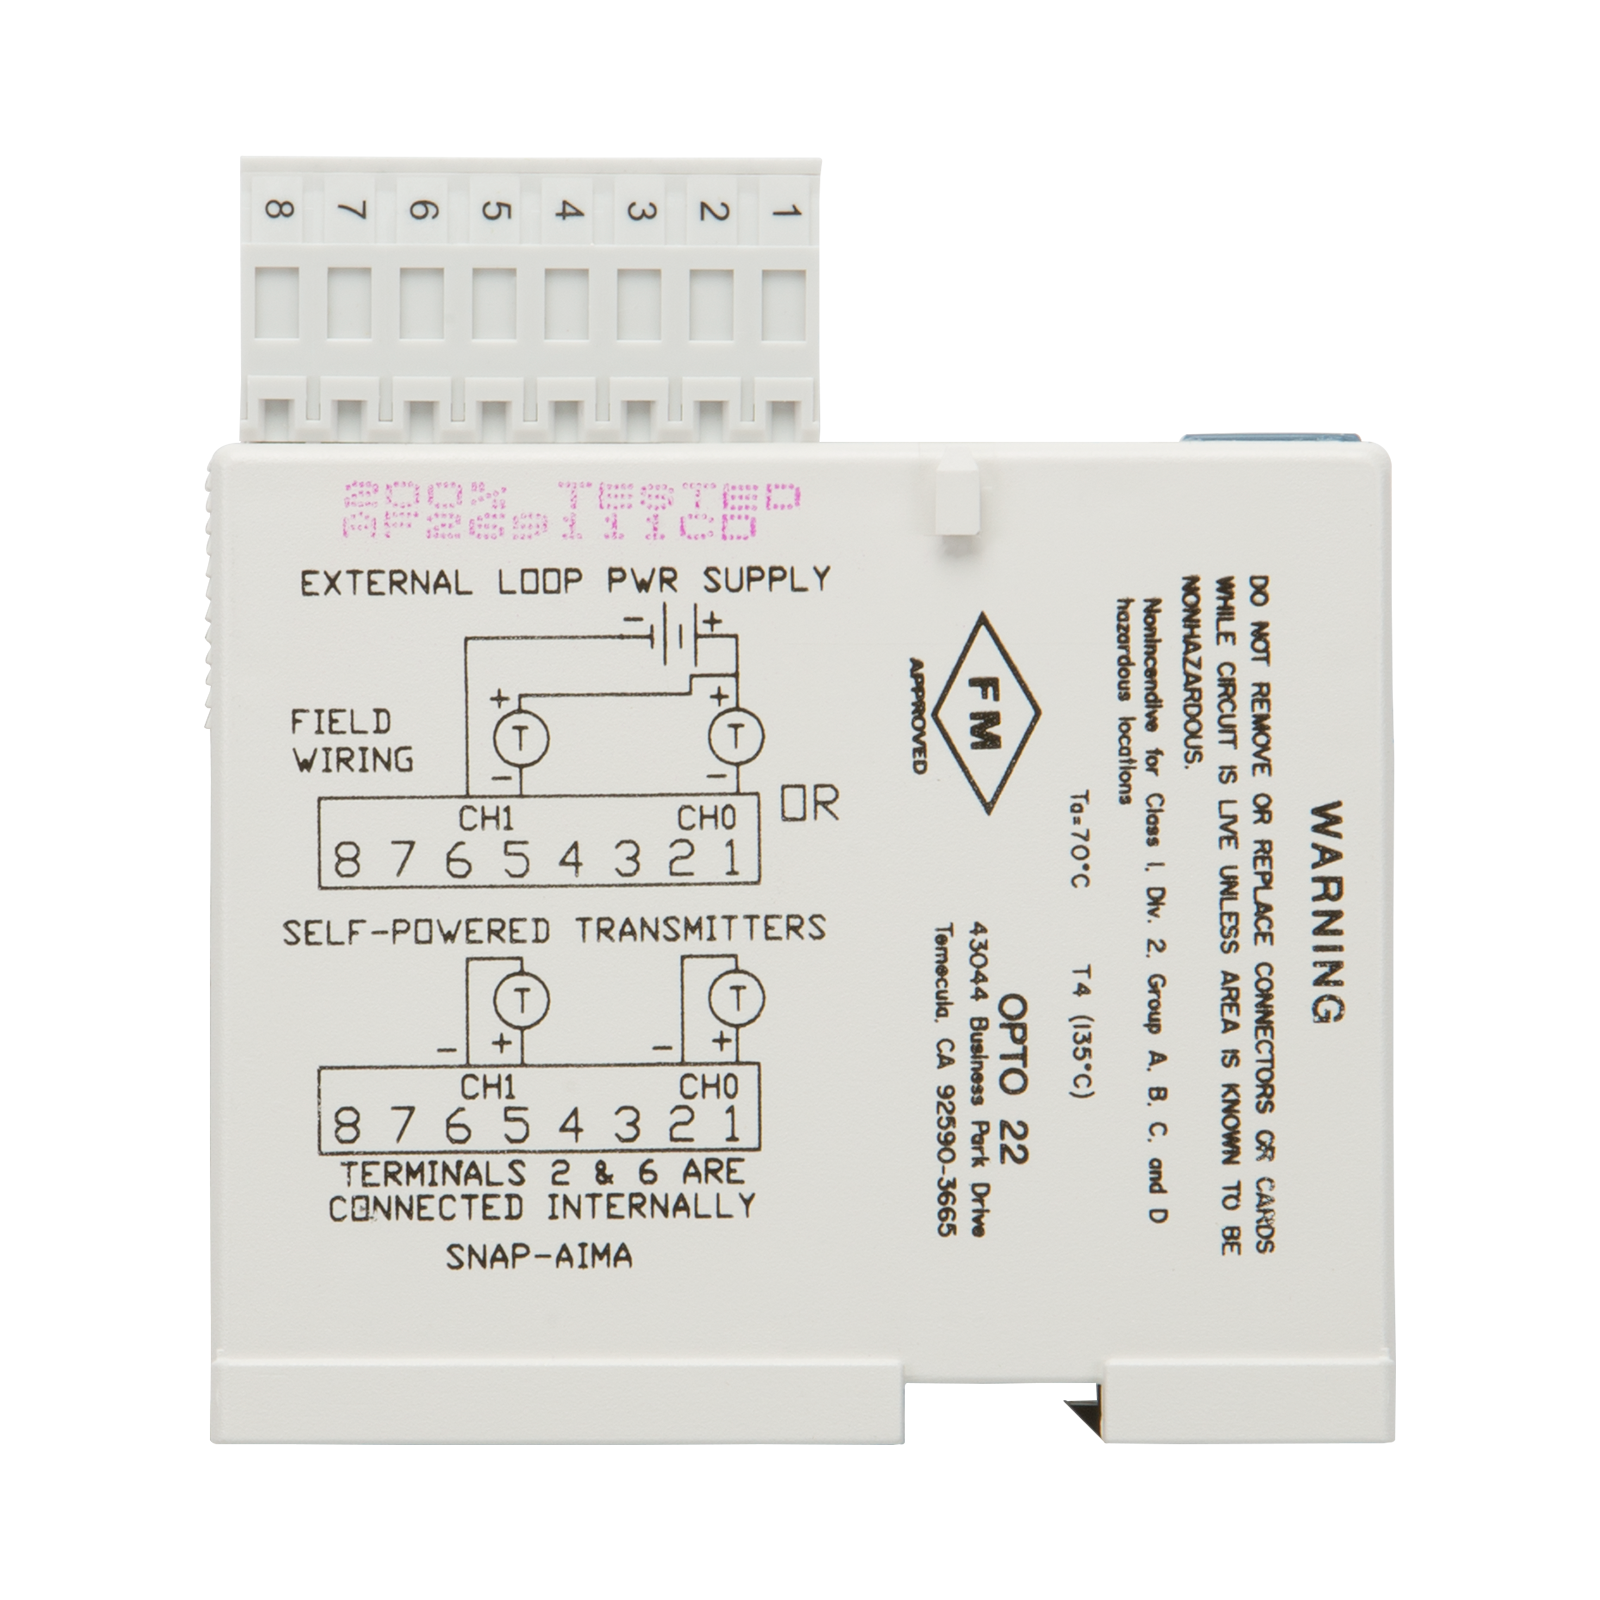 Opto 22 Wiring Diagram Diagrams Bourns Opto22 Snap Aima 2 Ch 20ma To Analog Current Input